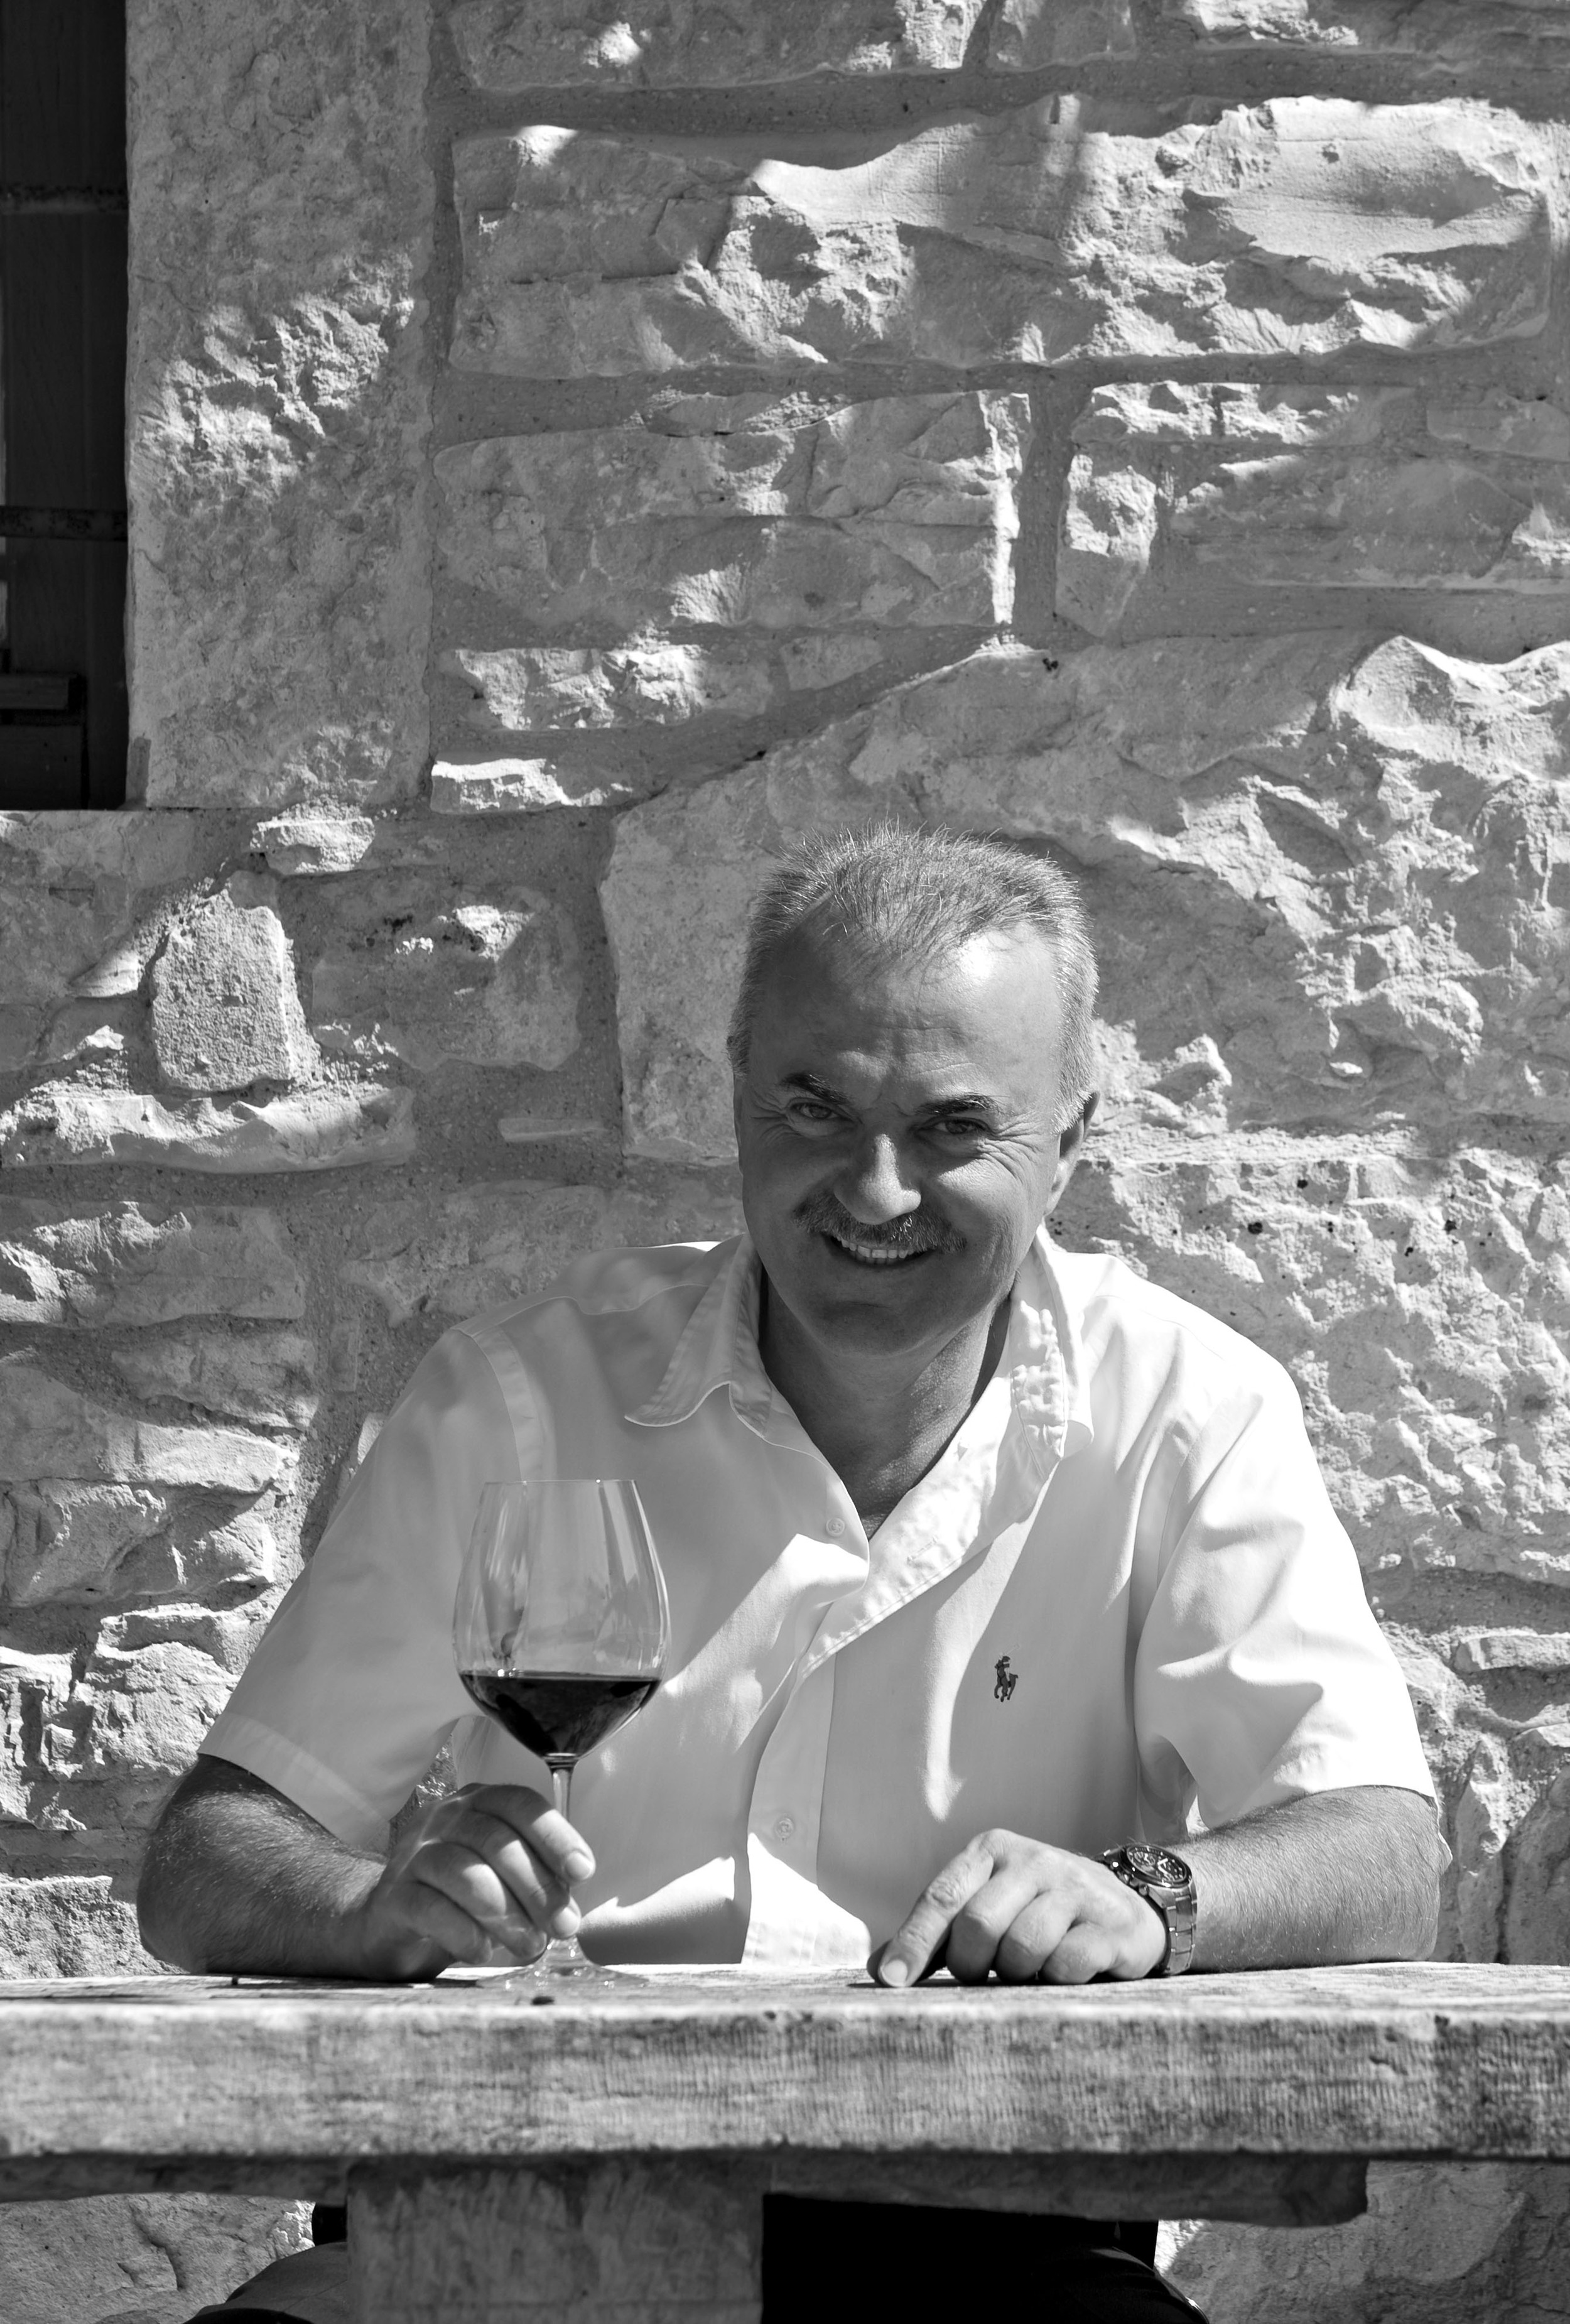 Marino Markežić used to make wine for his own restaurant; now he makes it for the international market